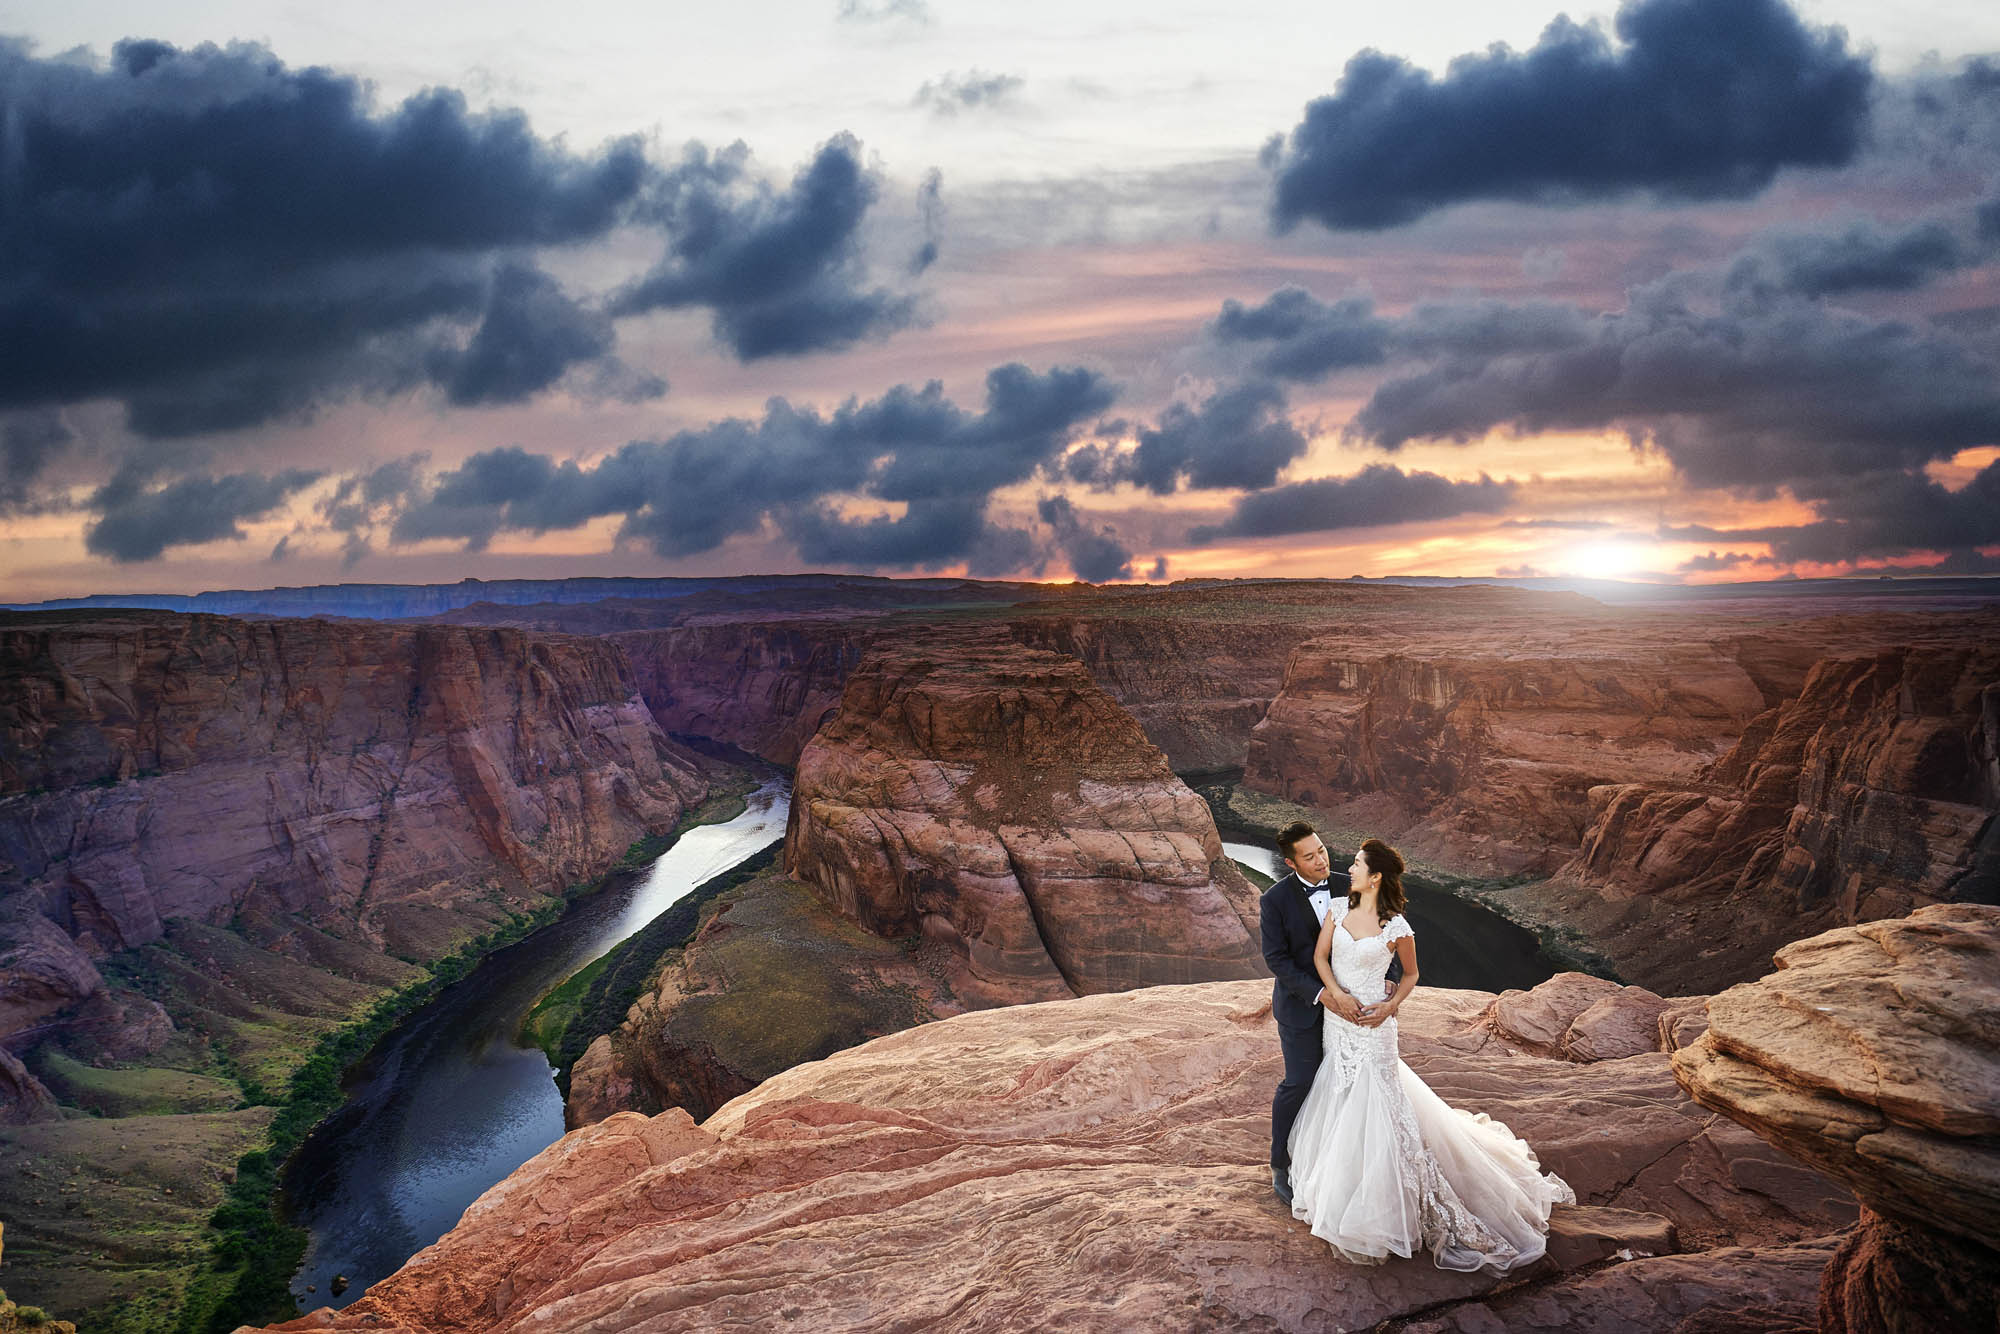 Bride and groom pose at Grand Canyon, photo by CM Leung